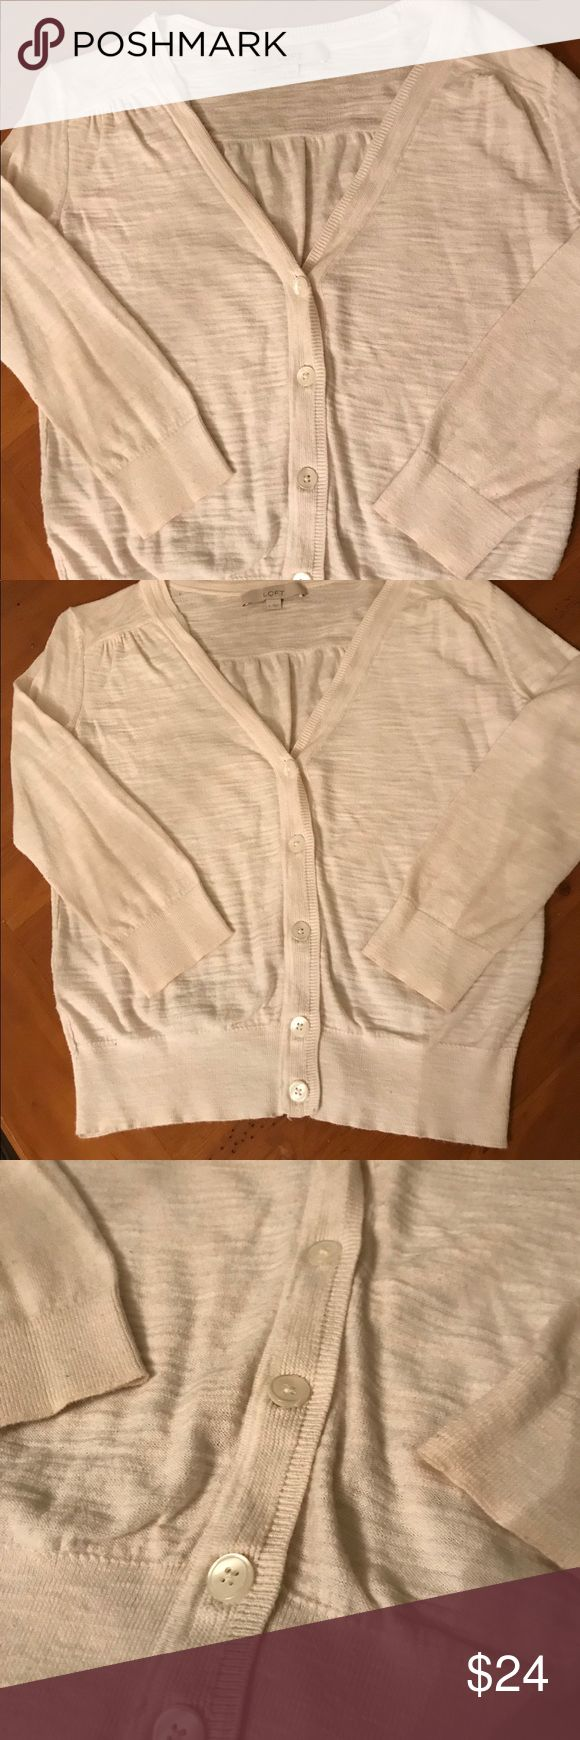 LOFT Long-sleeve Cardigan LOFT Long-shelve Cardigan. Size Small. White cream color. Perfect condition, with original buttons! 😍Adorable over a strappy top! Must Have! LOFT Sweaters Cardigans